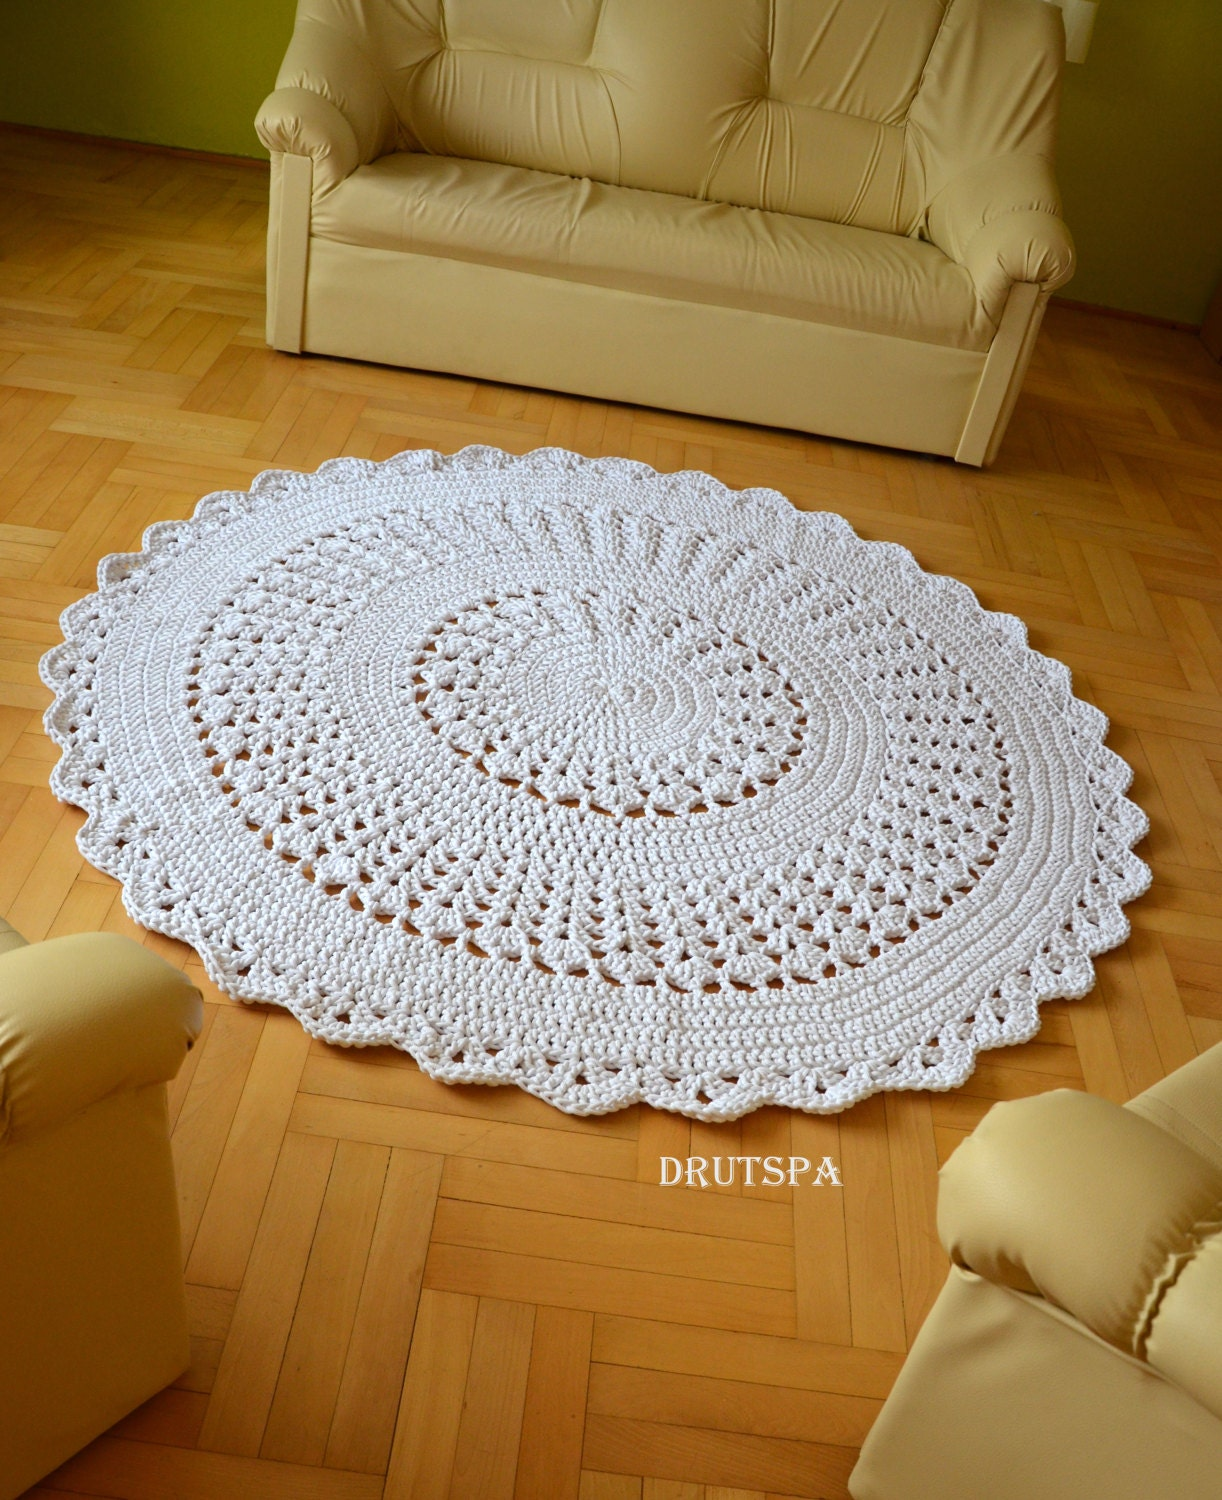 Promotion many colors shabby chic doilies carpets nursery rug for Tapis shabby chic